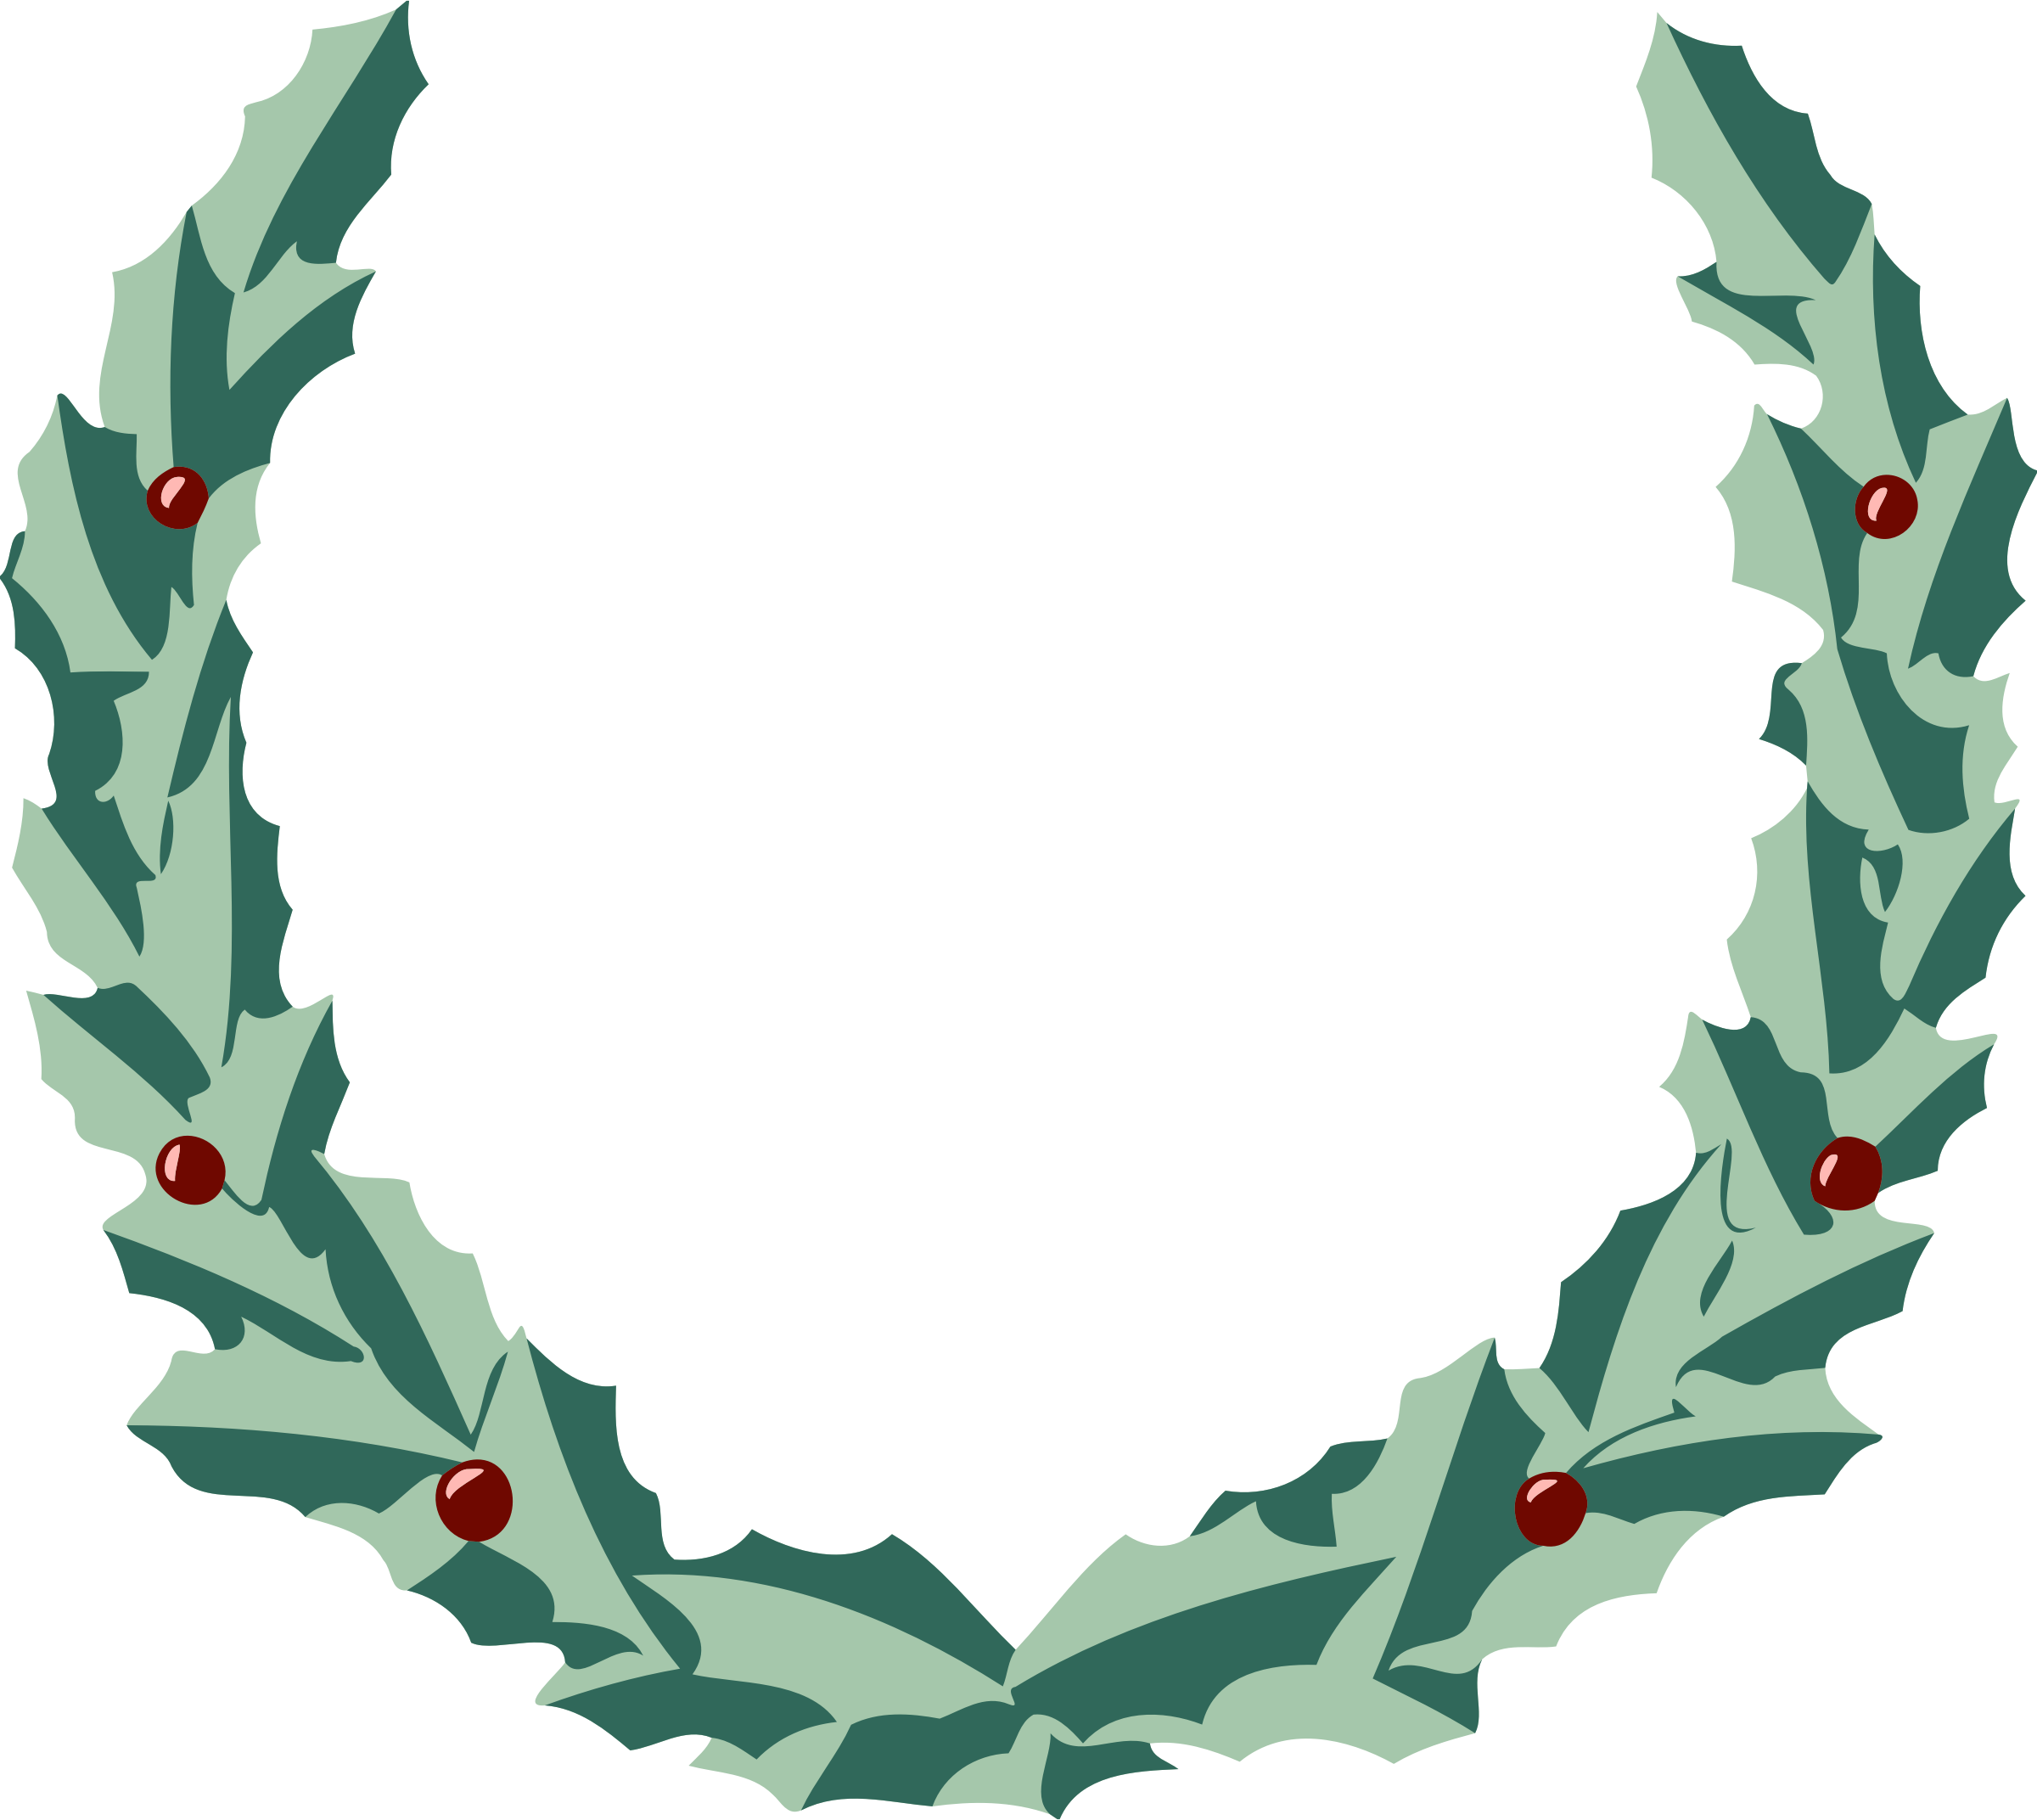 Wreath 2 by Firkin